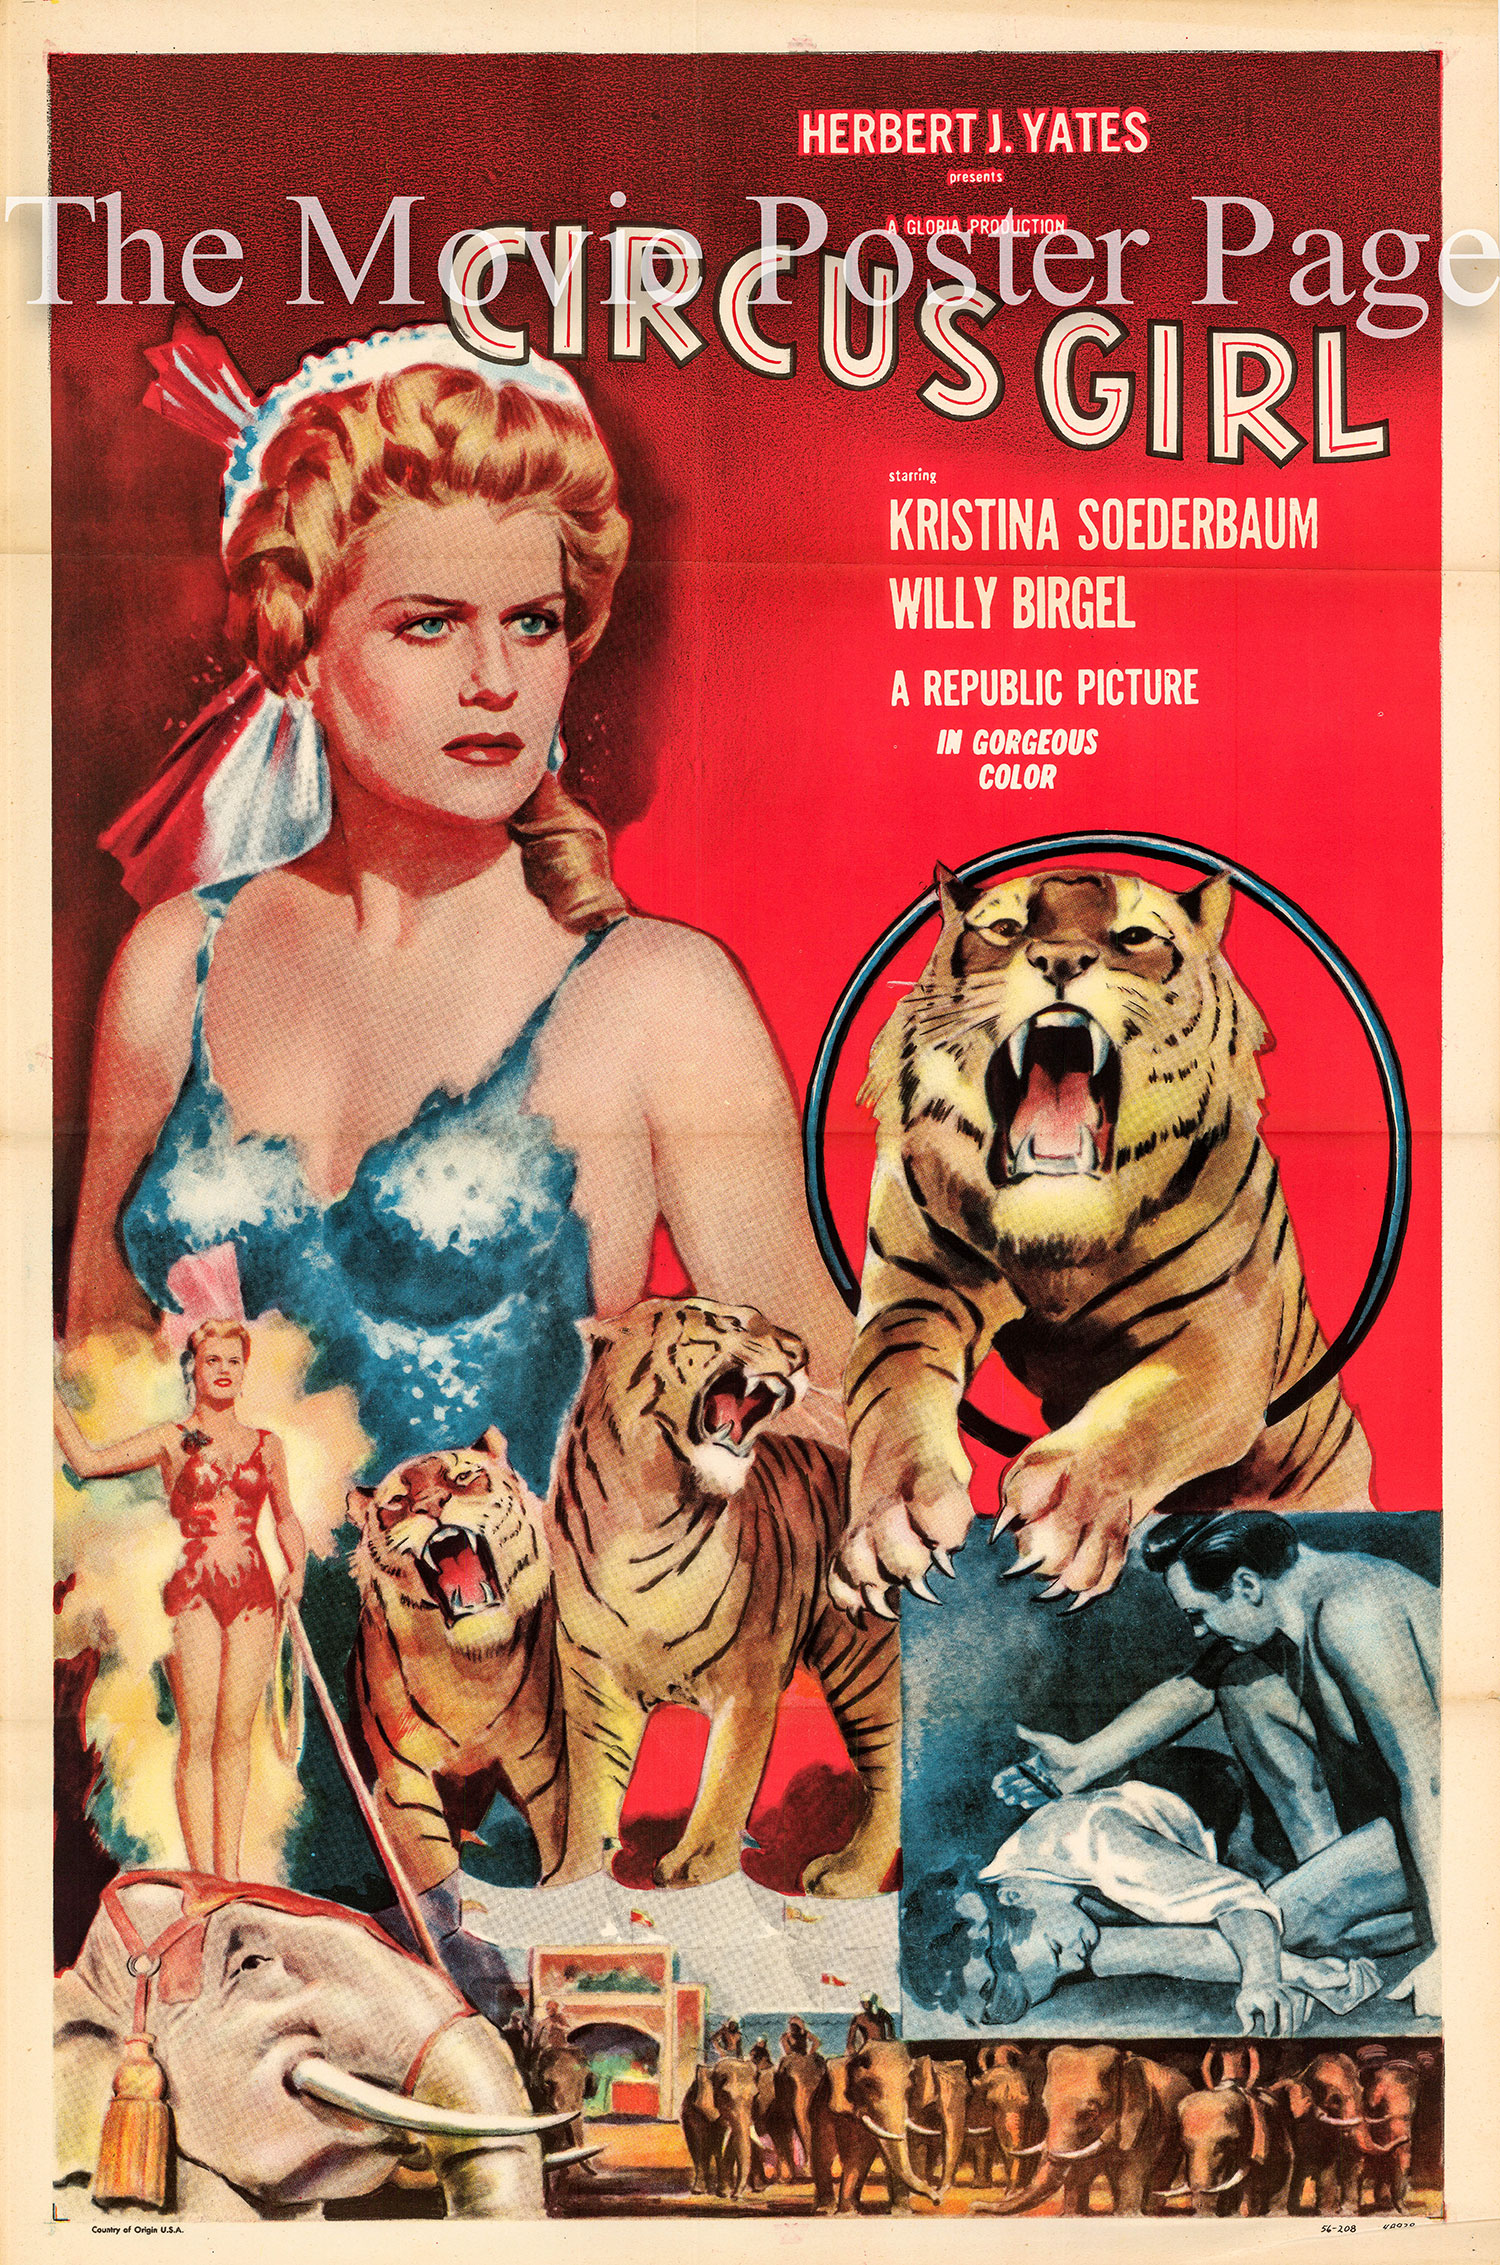 Pictured is a US poster for a 1956 rerelease of the 1954 Viet Harlan film Circus Girl starring Kristina Soderbaum.